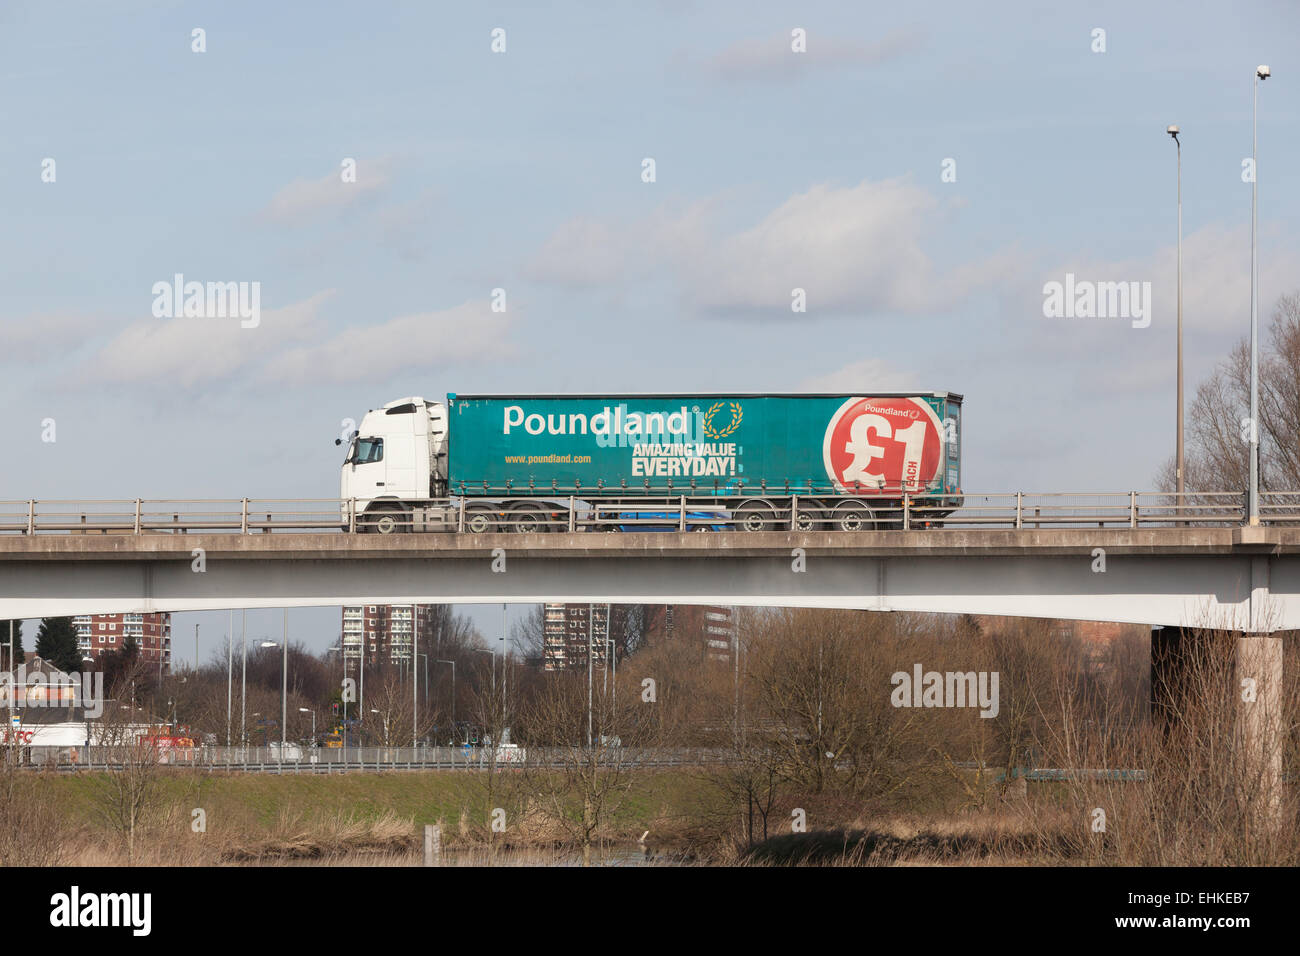 A Poundland truck travelling through the Midlands in the UK. - Stock Image